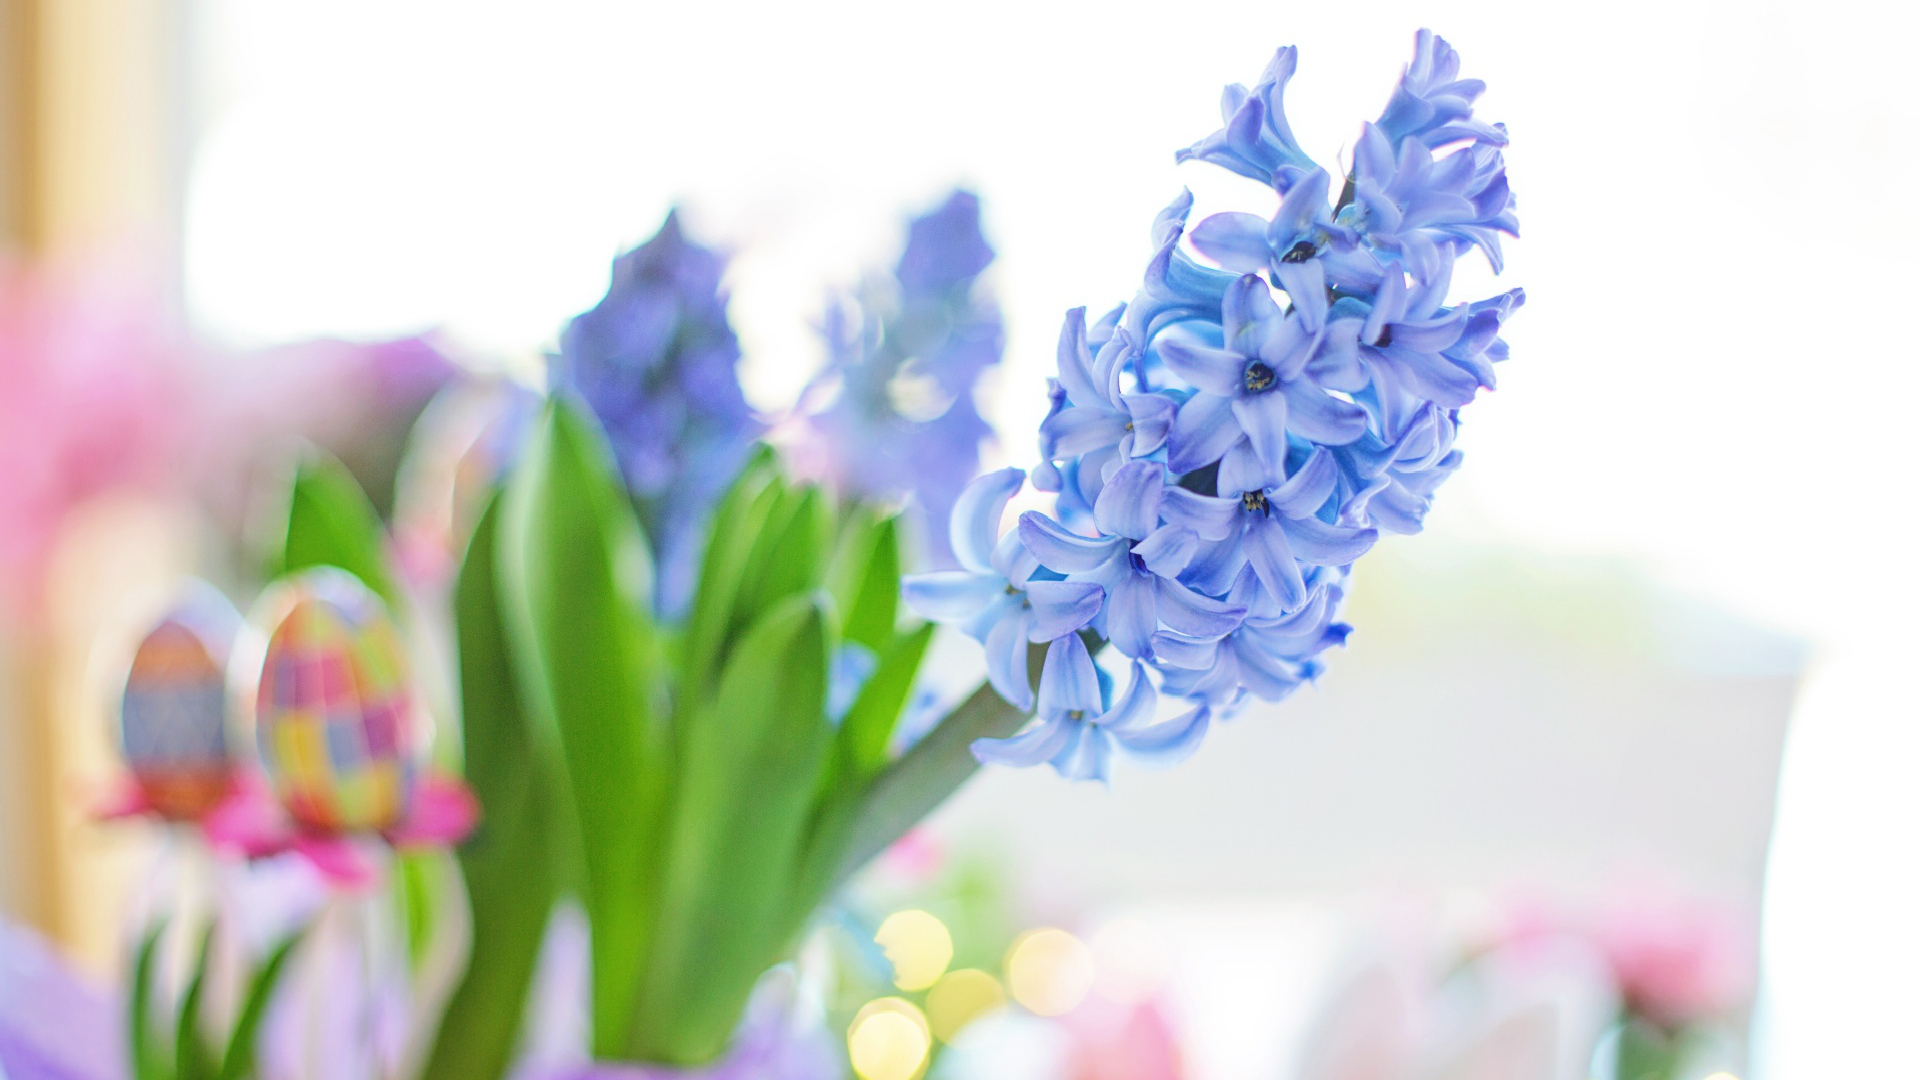 Easter 2020 Blue Hyacinth Flower Spring Wallpaper File HD 1920x1080